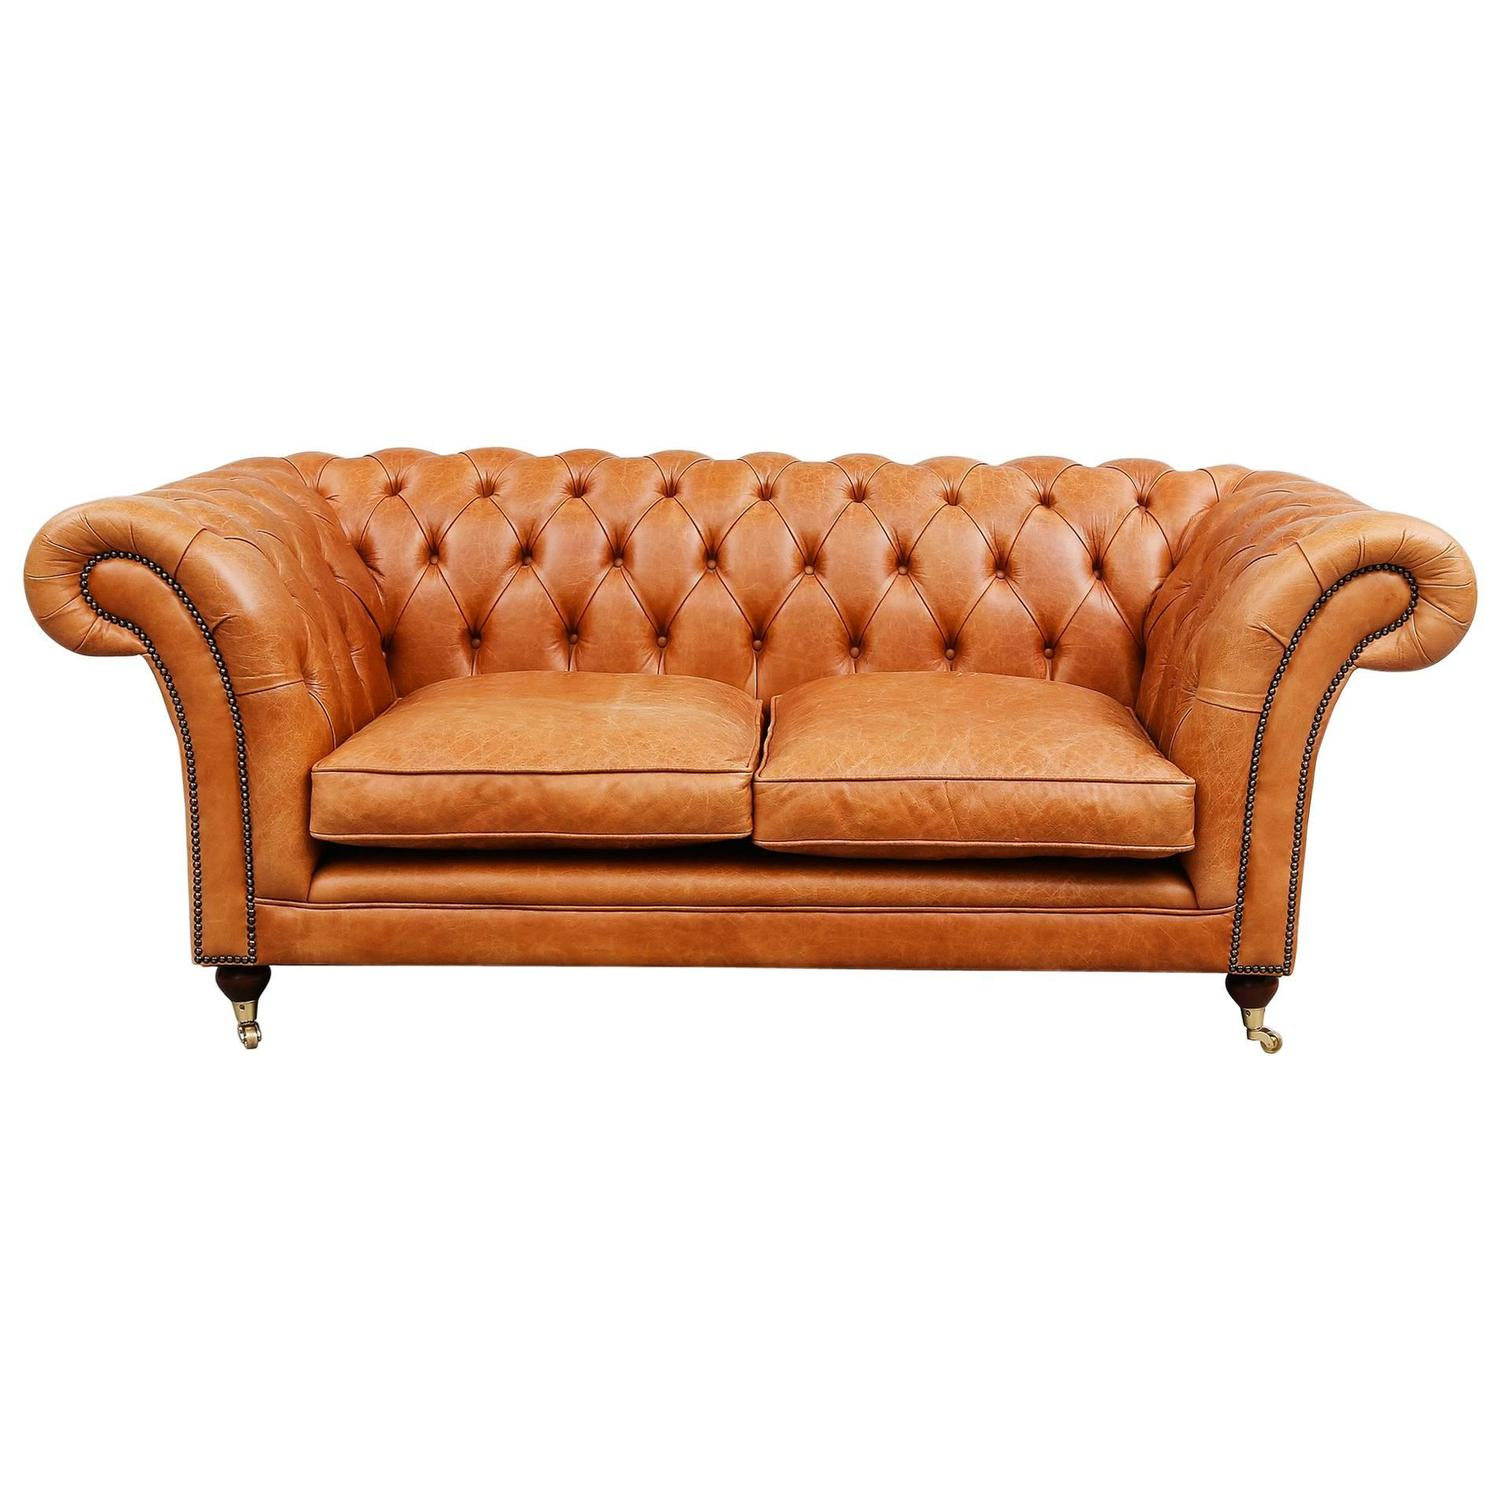 Light brown leather chesterfield sofa for sale at 1stdibs for Tan couches for sale